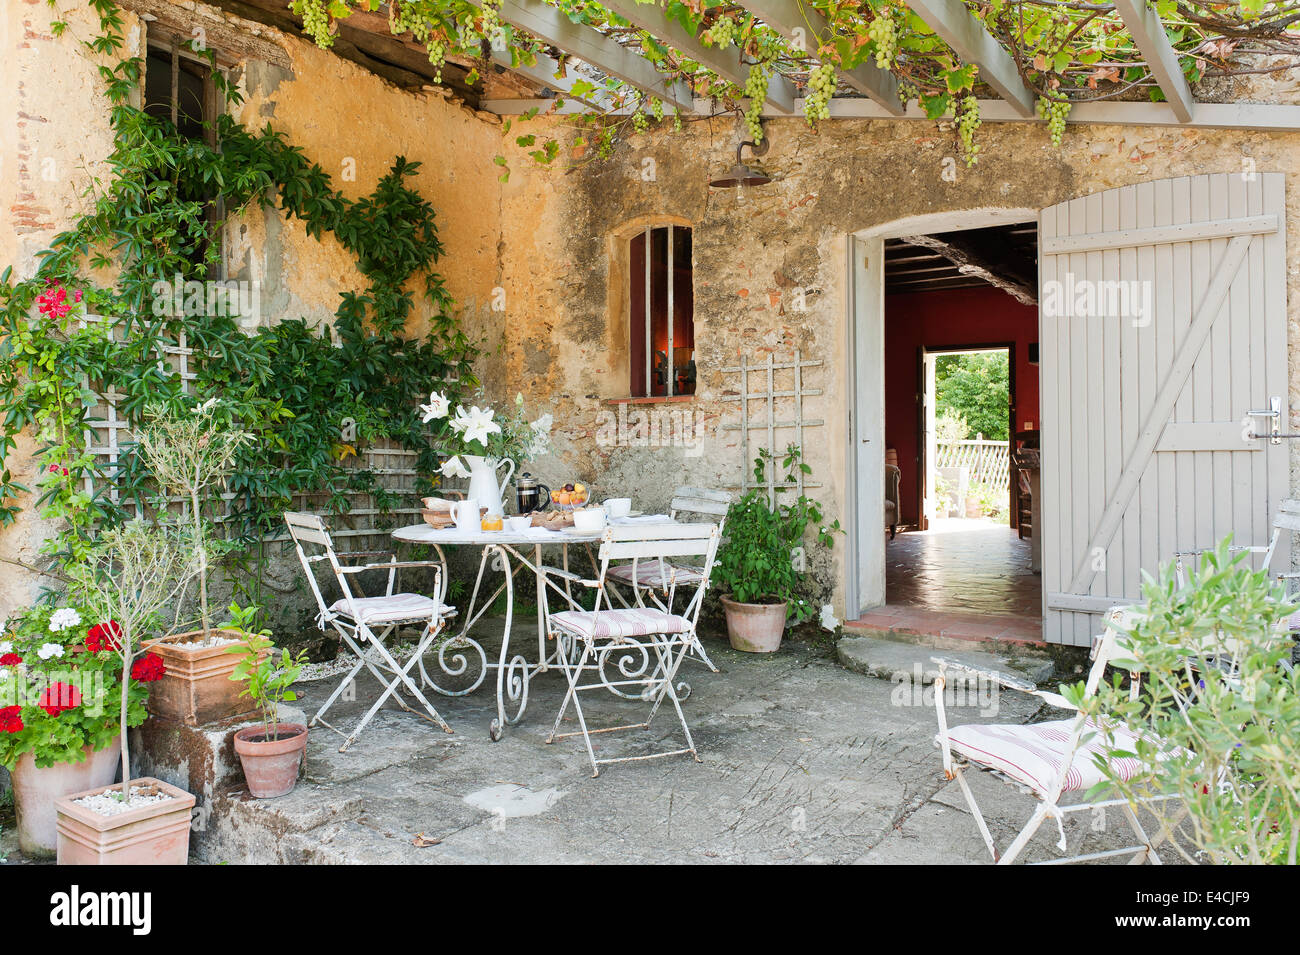 Wrought iron table and folding bistro chairs in courtyard with overhead trellis and grapevine Stock Photo